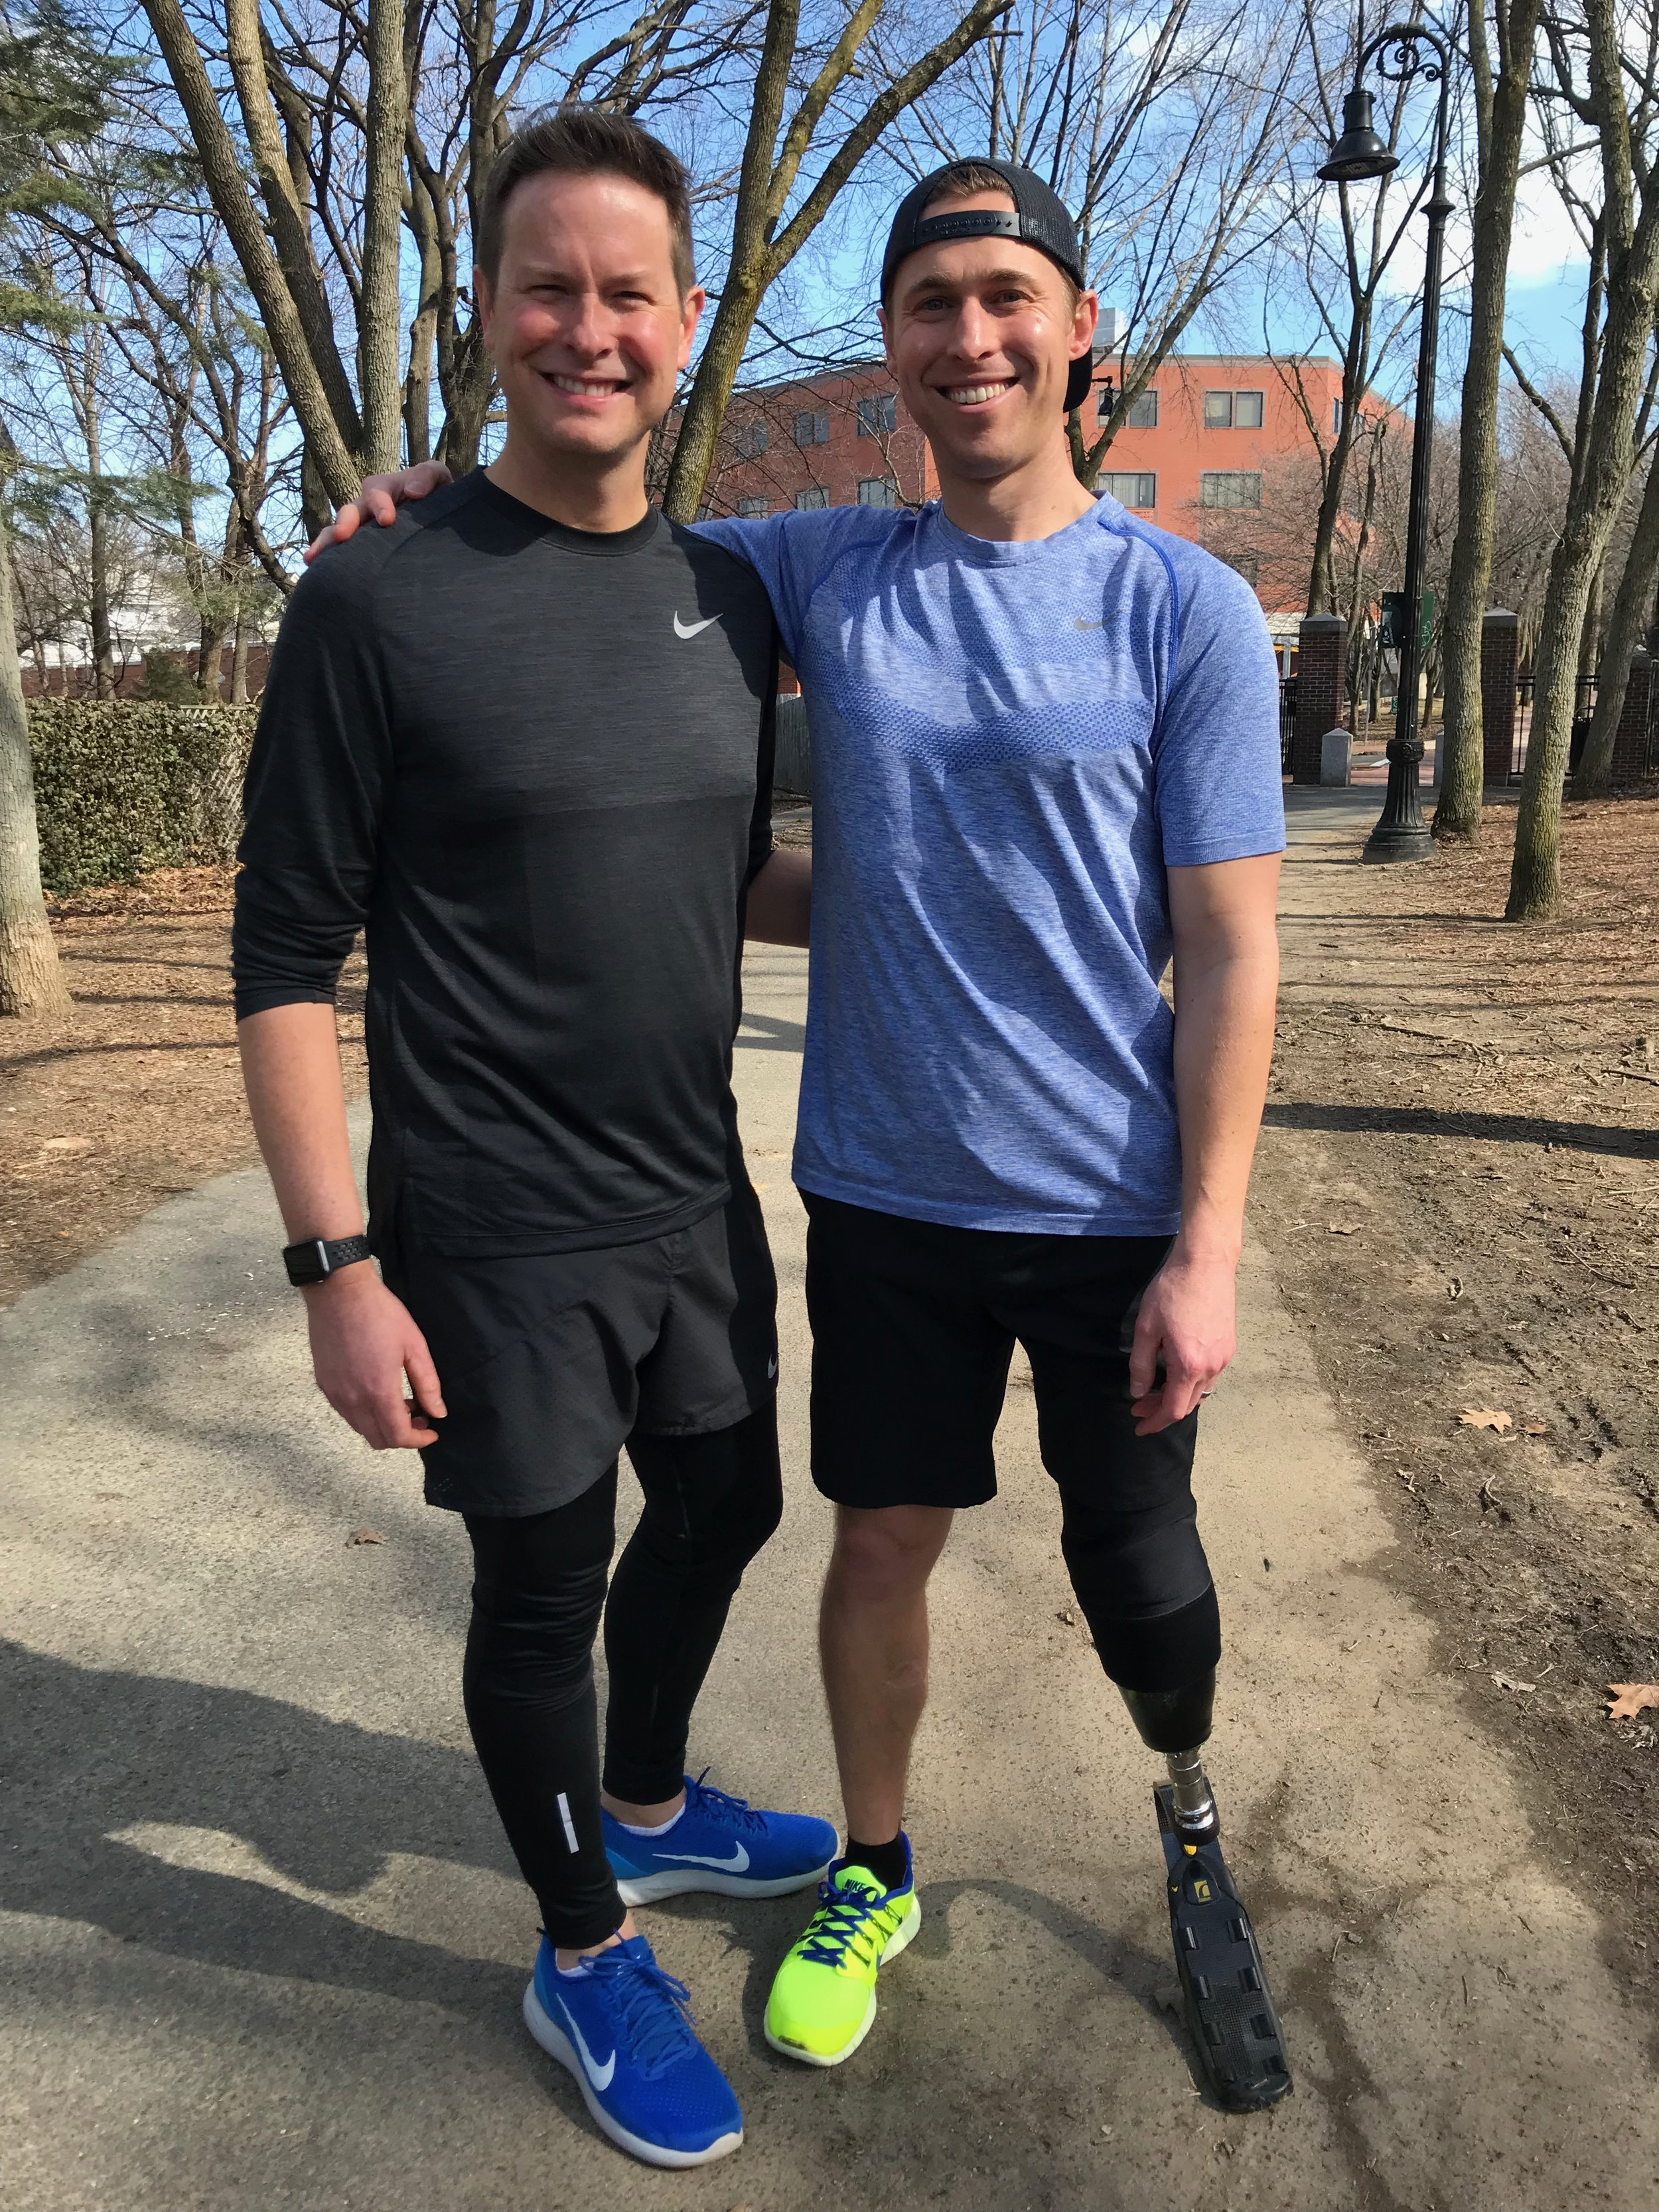 Patrick and I ran together as part of our 2018 Boston Marathon training.